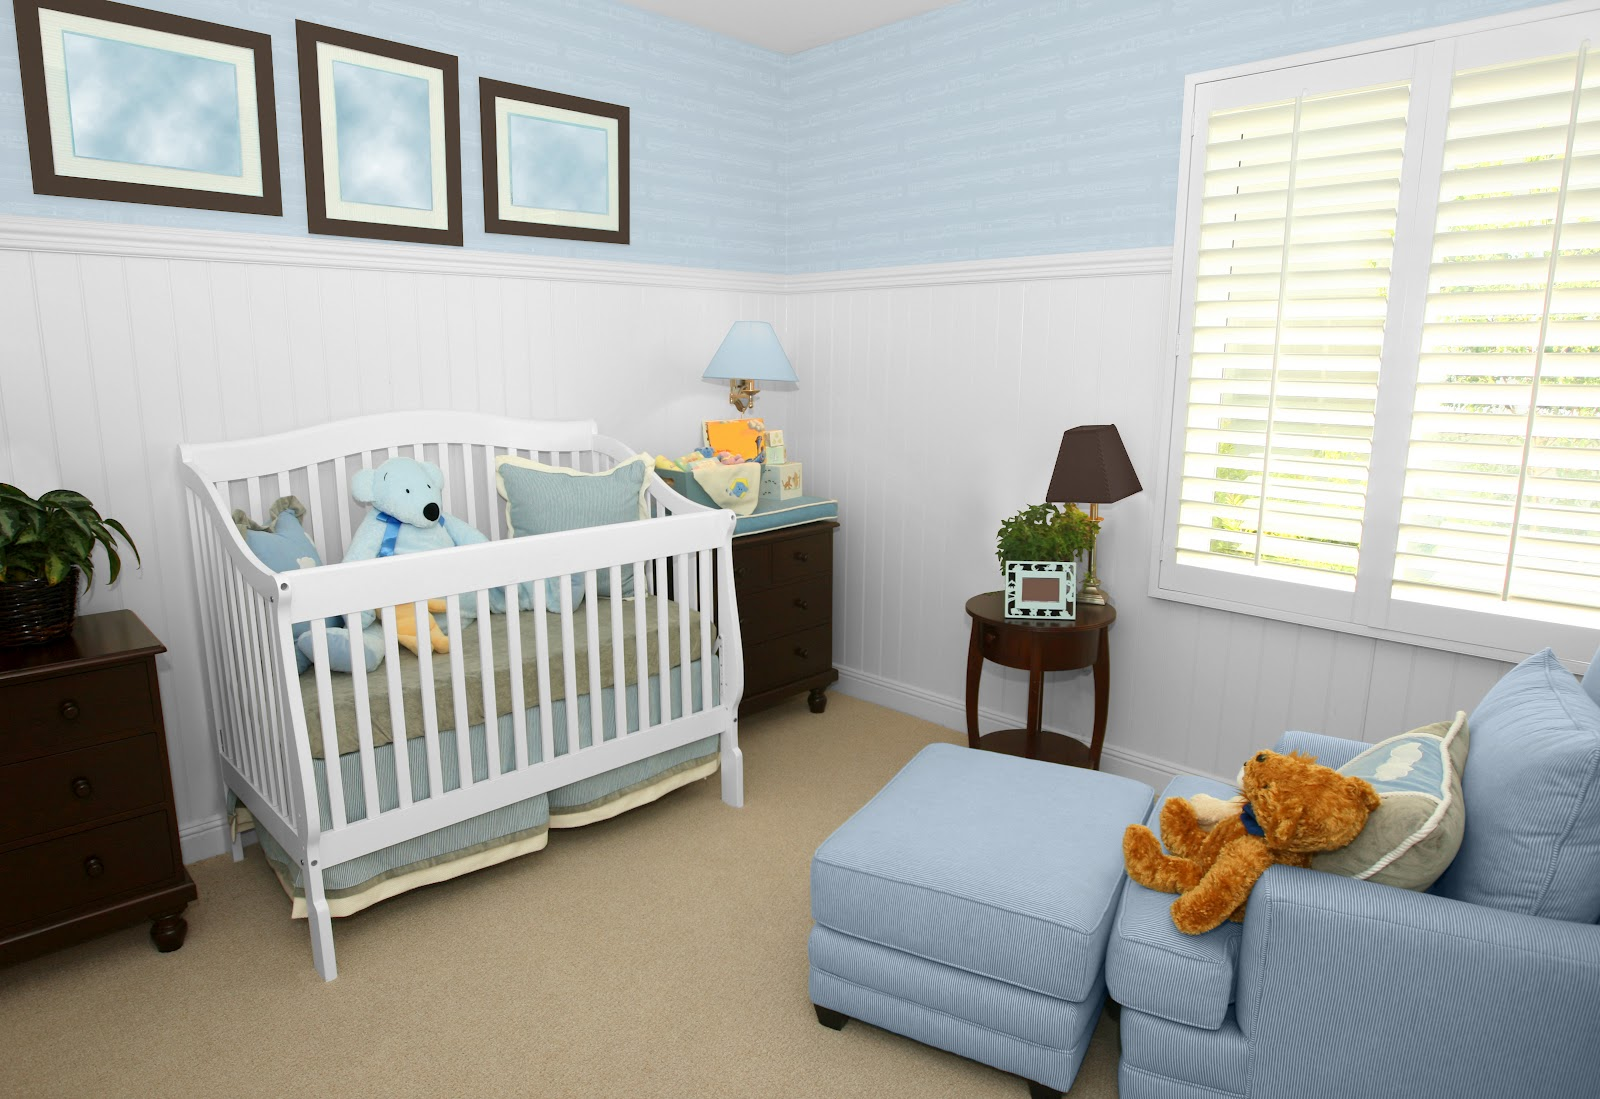 Top 10 Baby Nursery Room Colors (And Decorating Ideas)